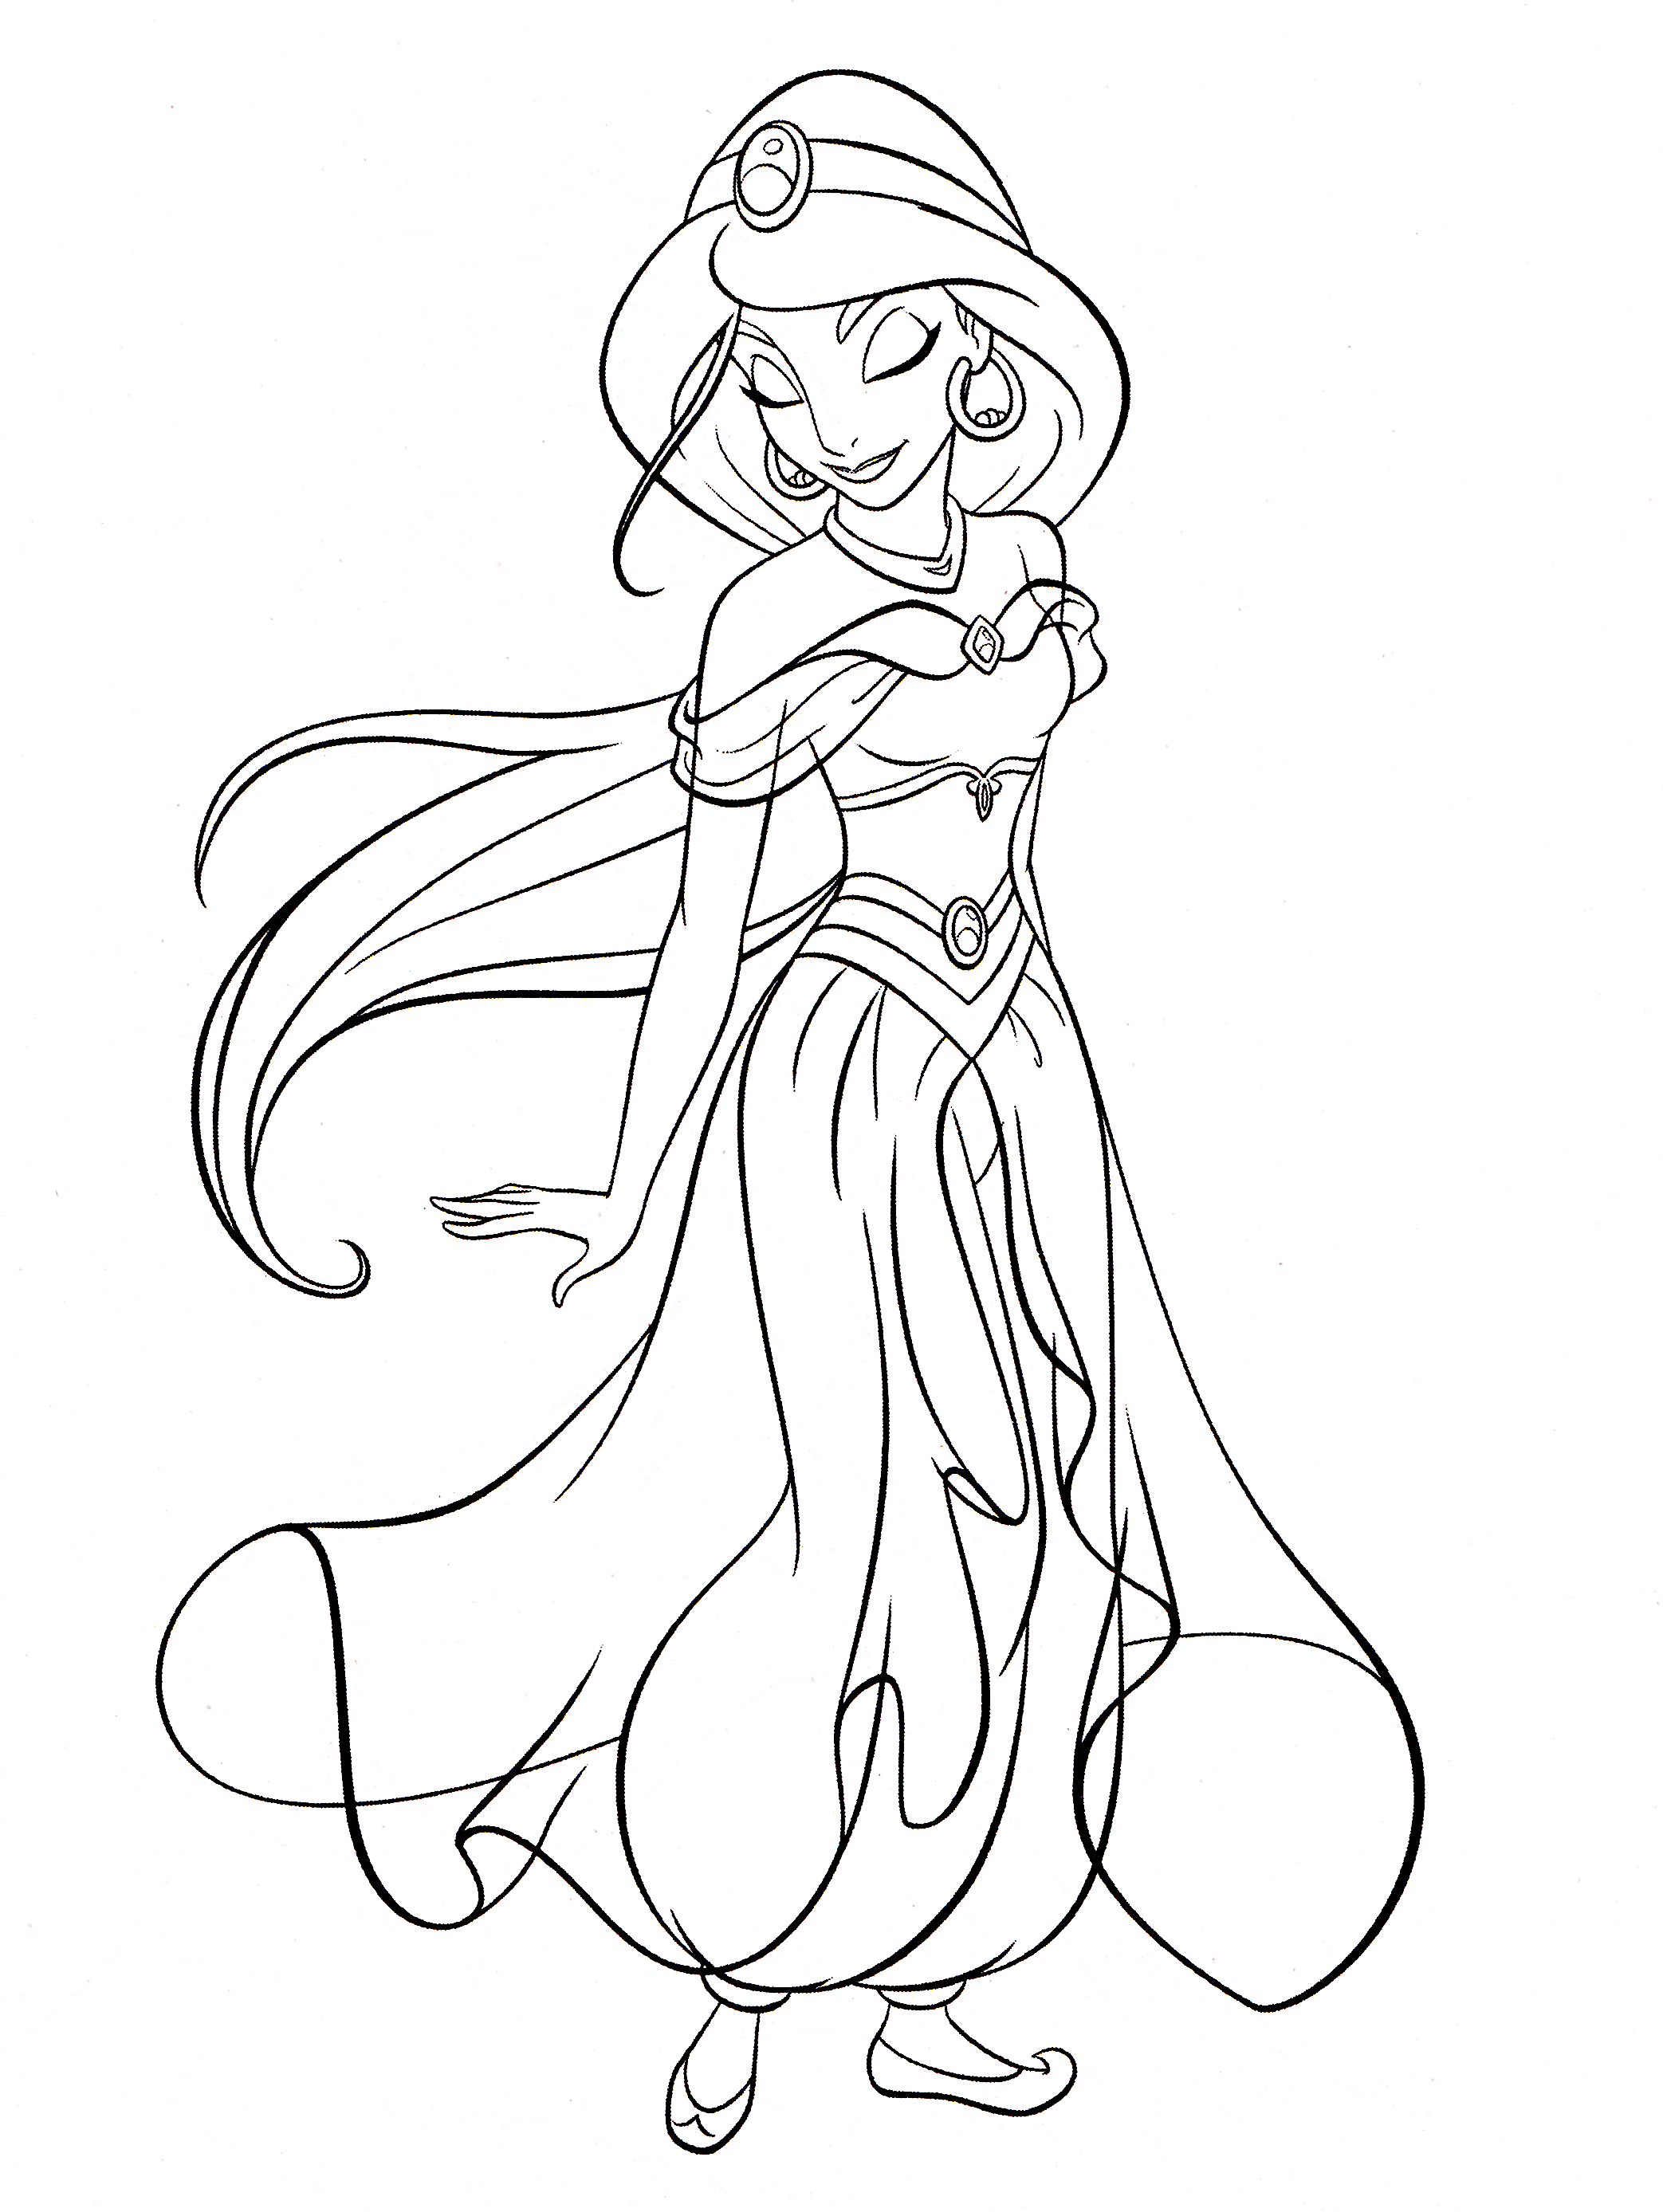 Princess Disney Drawing at GetDrawings.com | Free for personal use ...